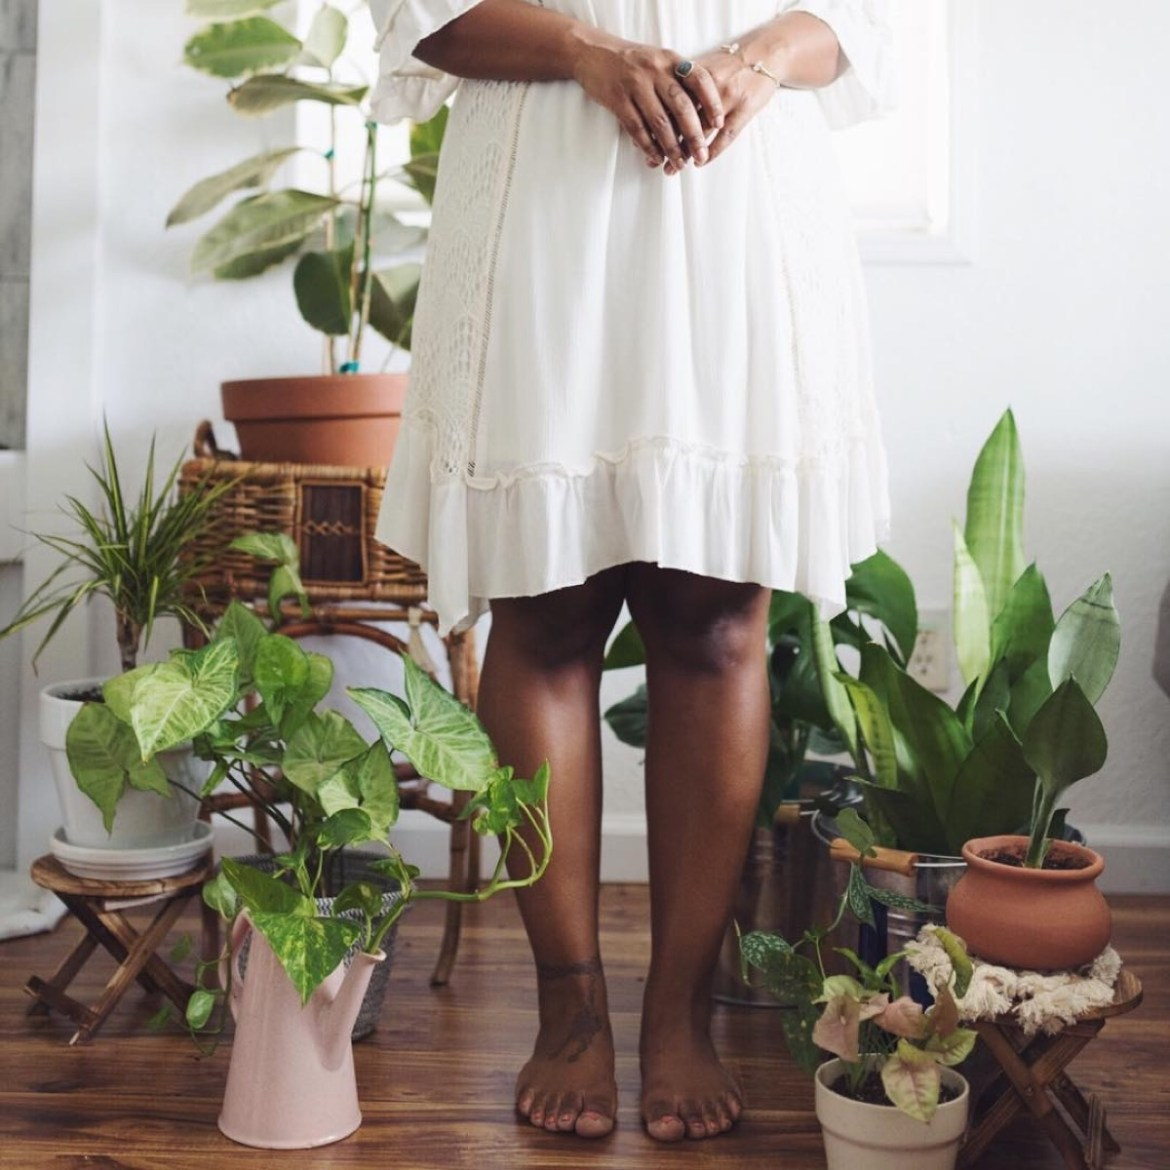 Plant ladies to start following on Instagram - D'Ana Joi